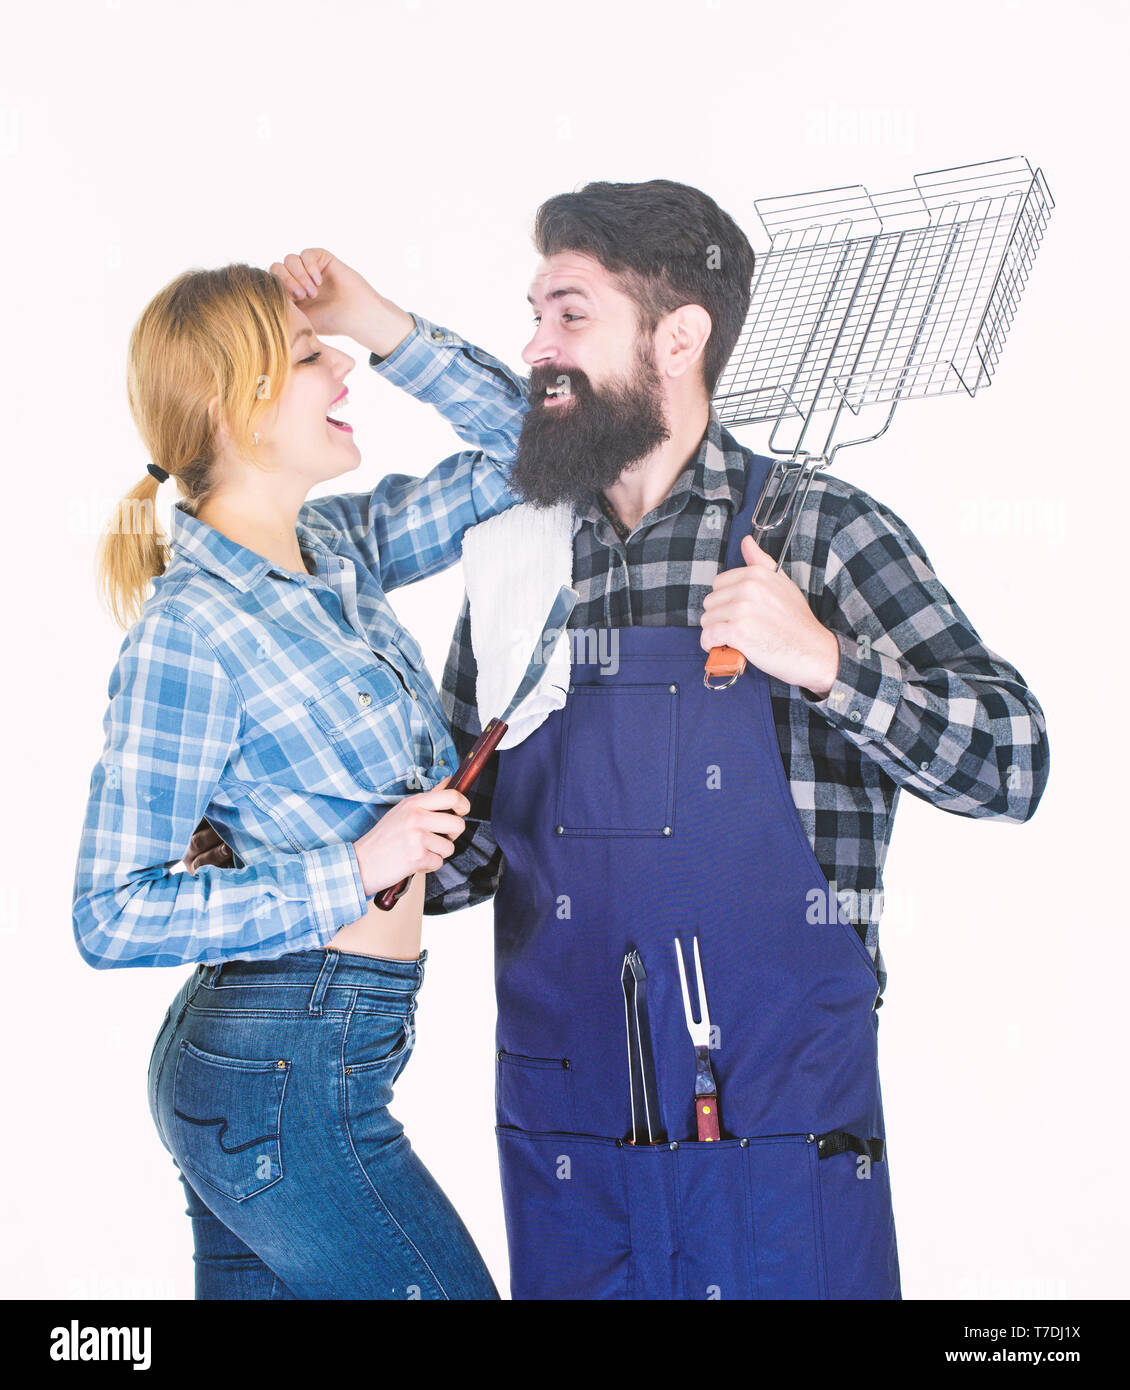 Family barbeque. Family weekend. Picnic barbecue. food cooking recipe. Tools for roasting meat. Couple in love hold kitchen utensils. Man bearded hipster and girl. Preparation and culinary. - Stock Image